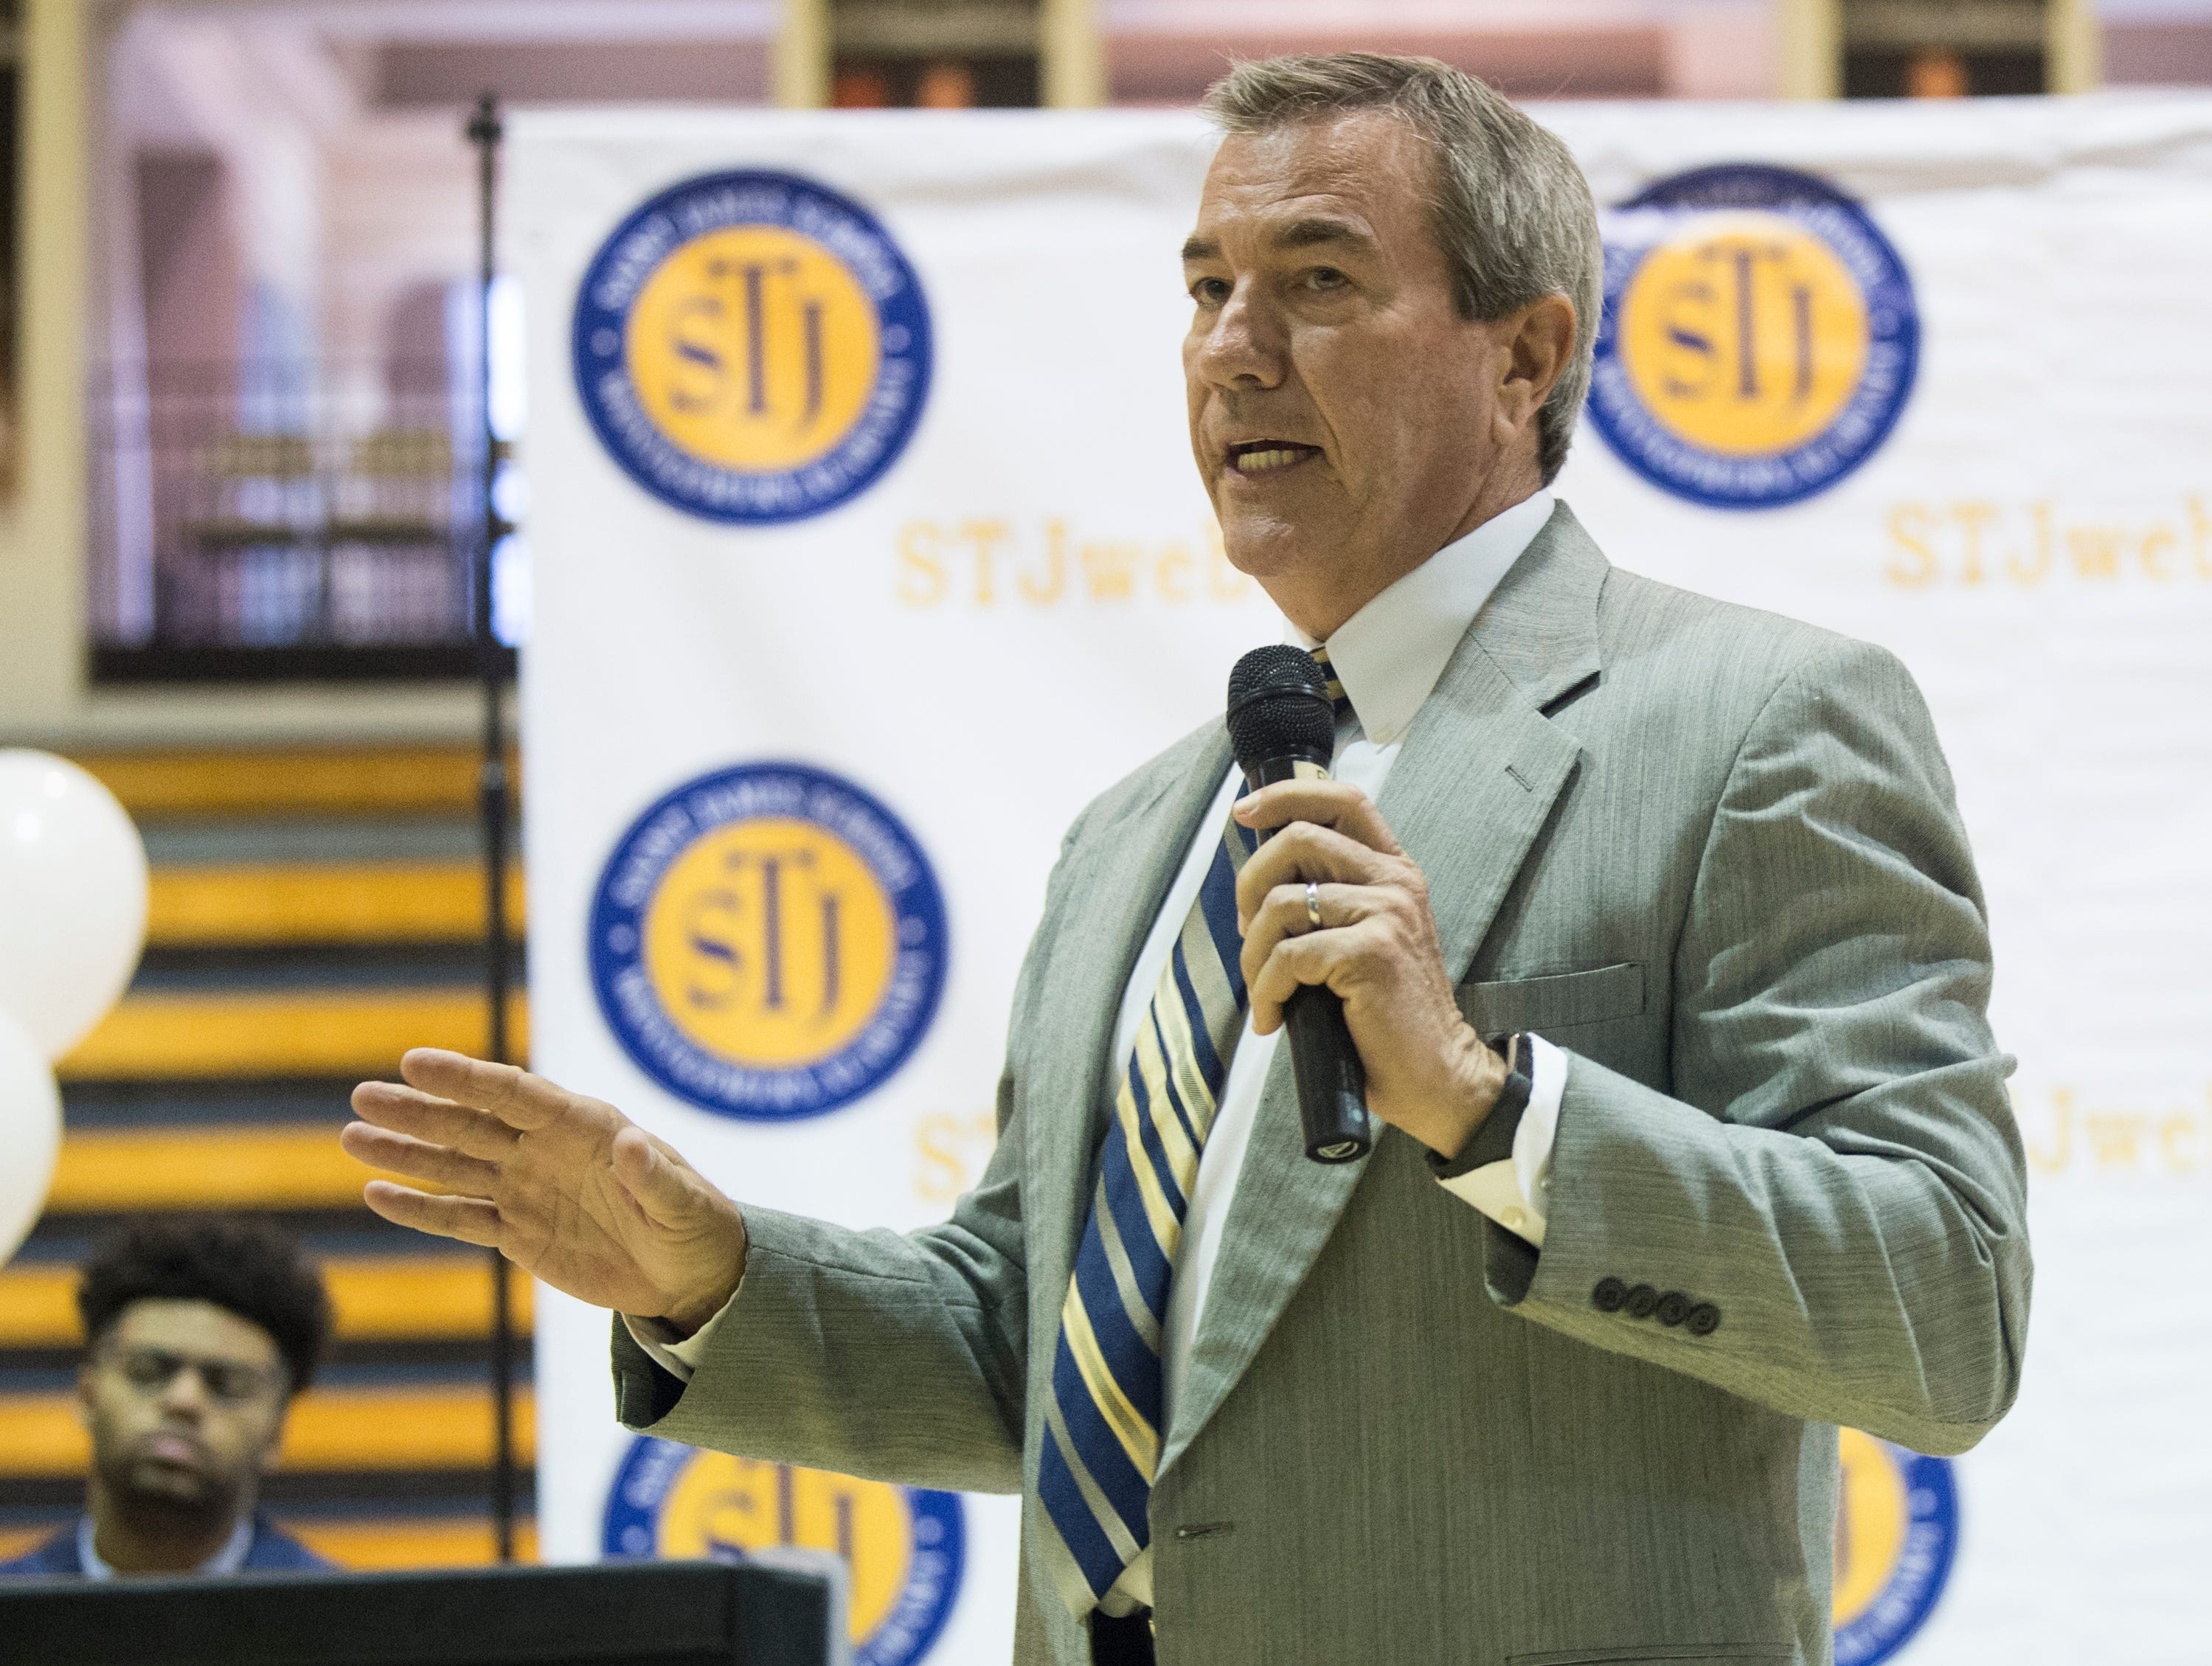 St. James coach Jimmy Perry speaks during signing day at St. James High School in Montgomery, Ala., on Wednesday, Feb. 6, 2019.